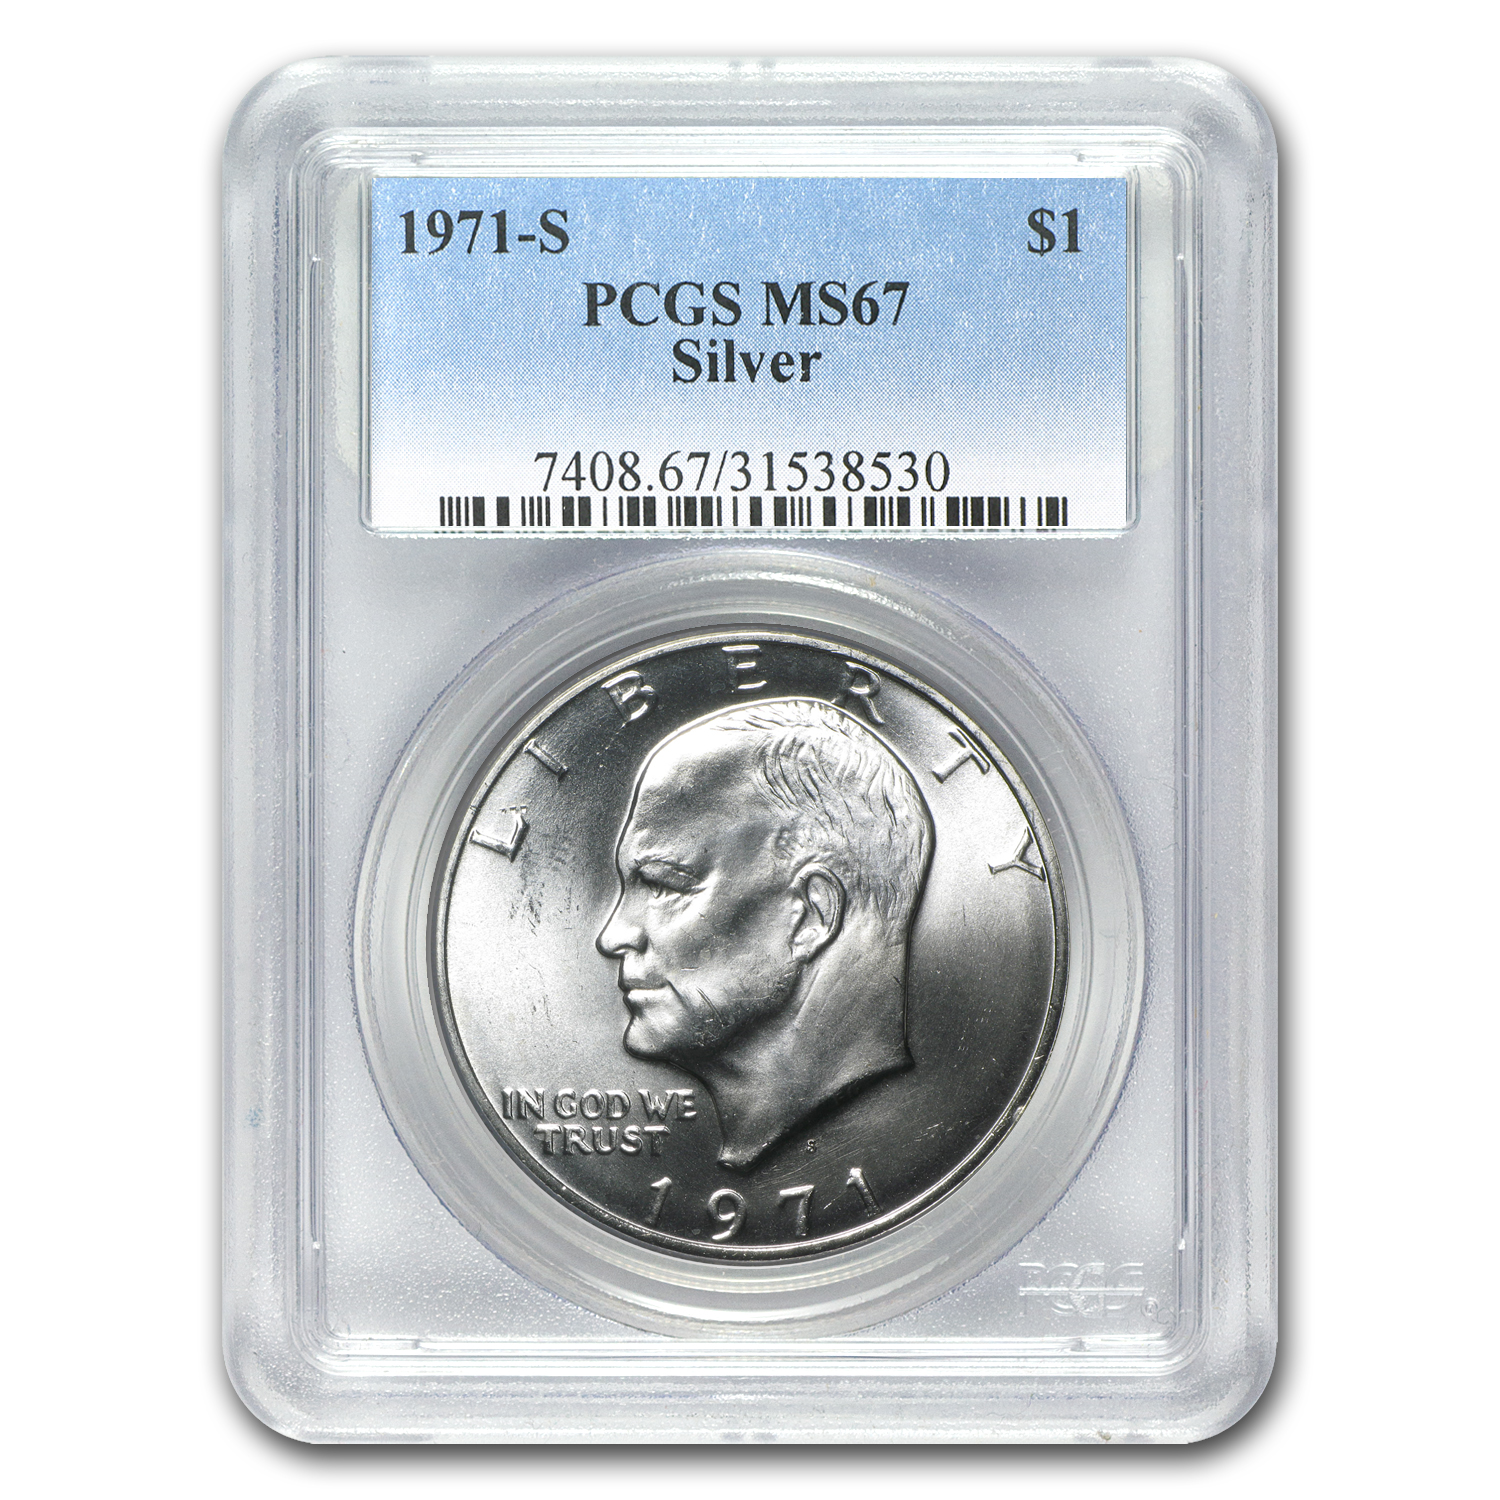 1971-S Eisenhower Silver Dollar MS-67 - PCGS - Registry Coin